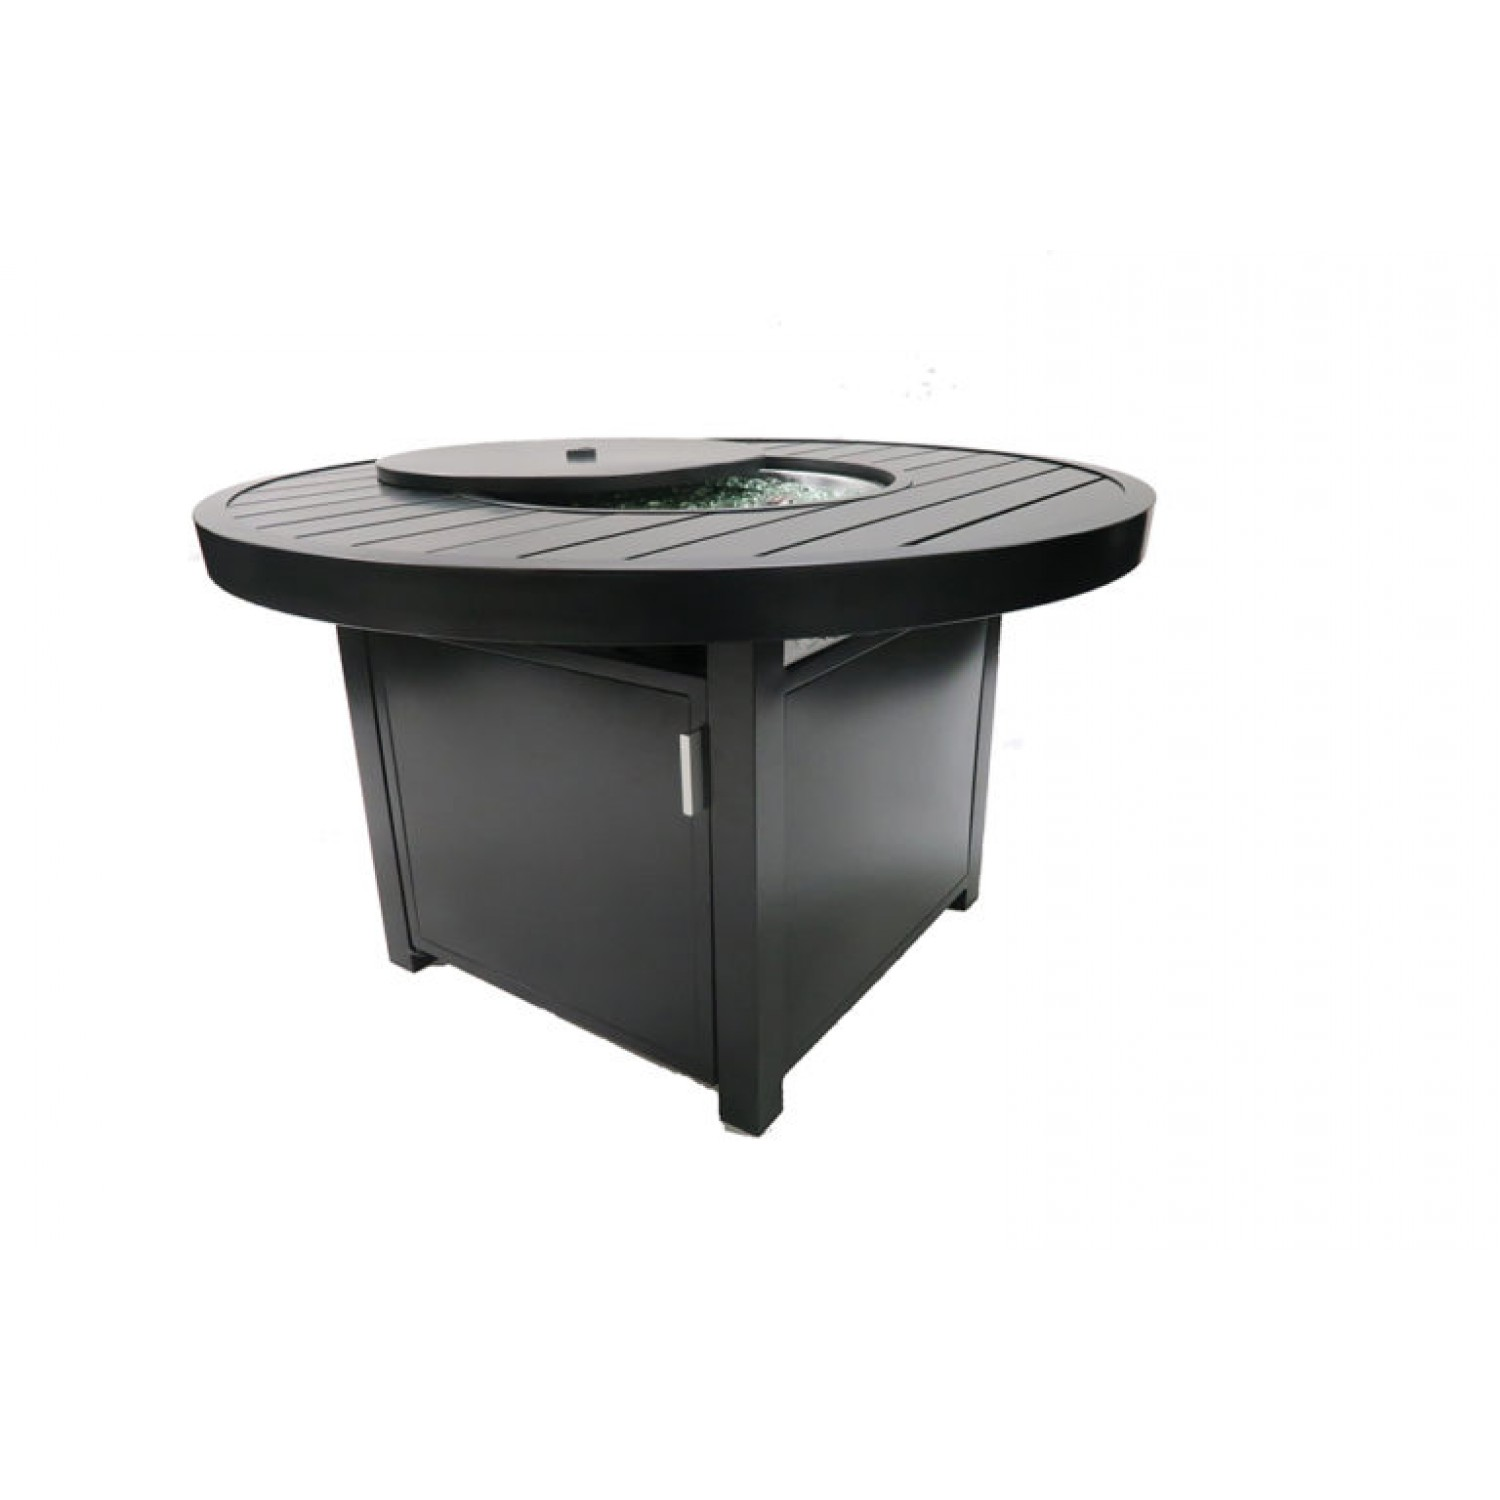 Enclover Round Fire Table